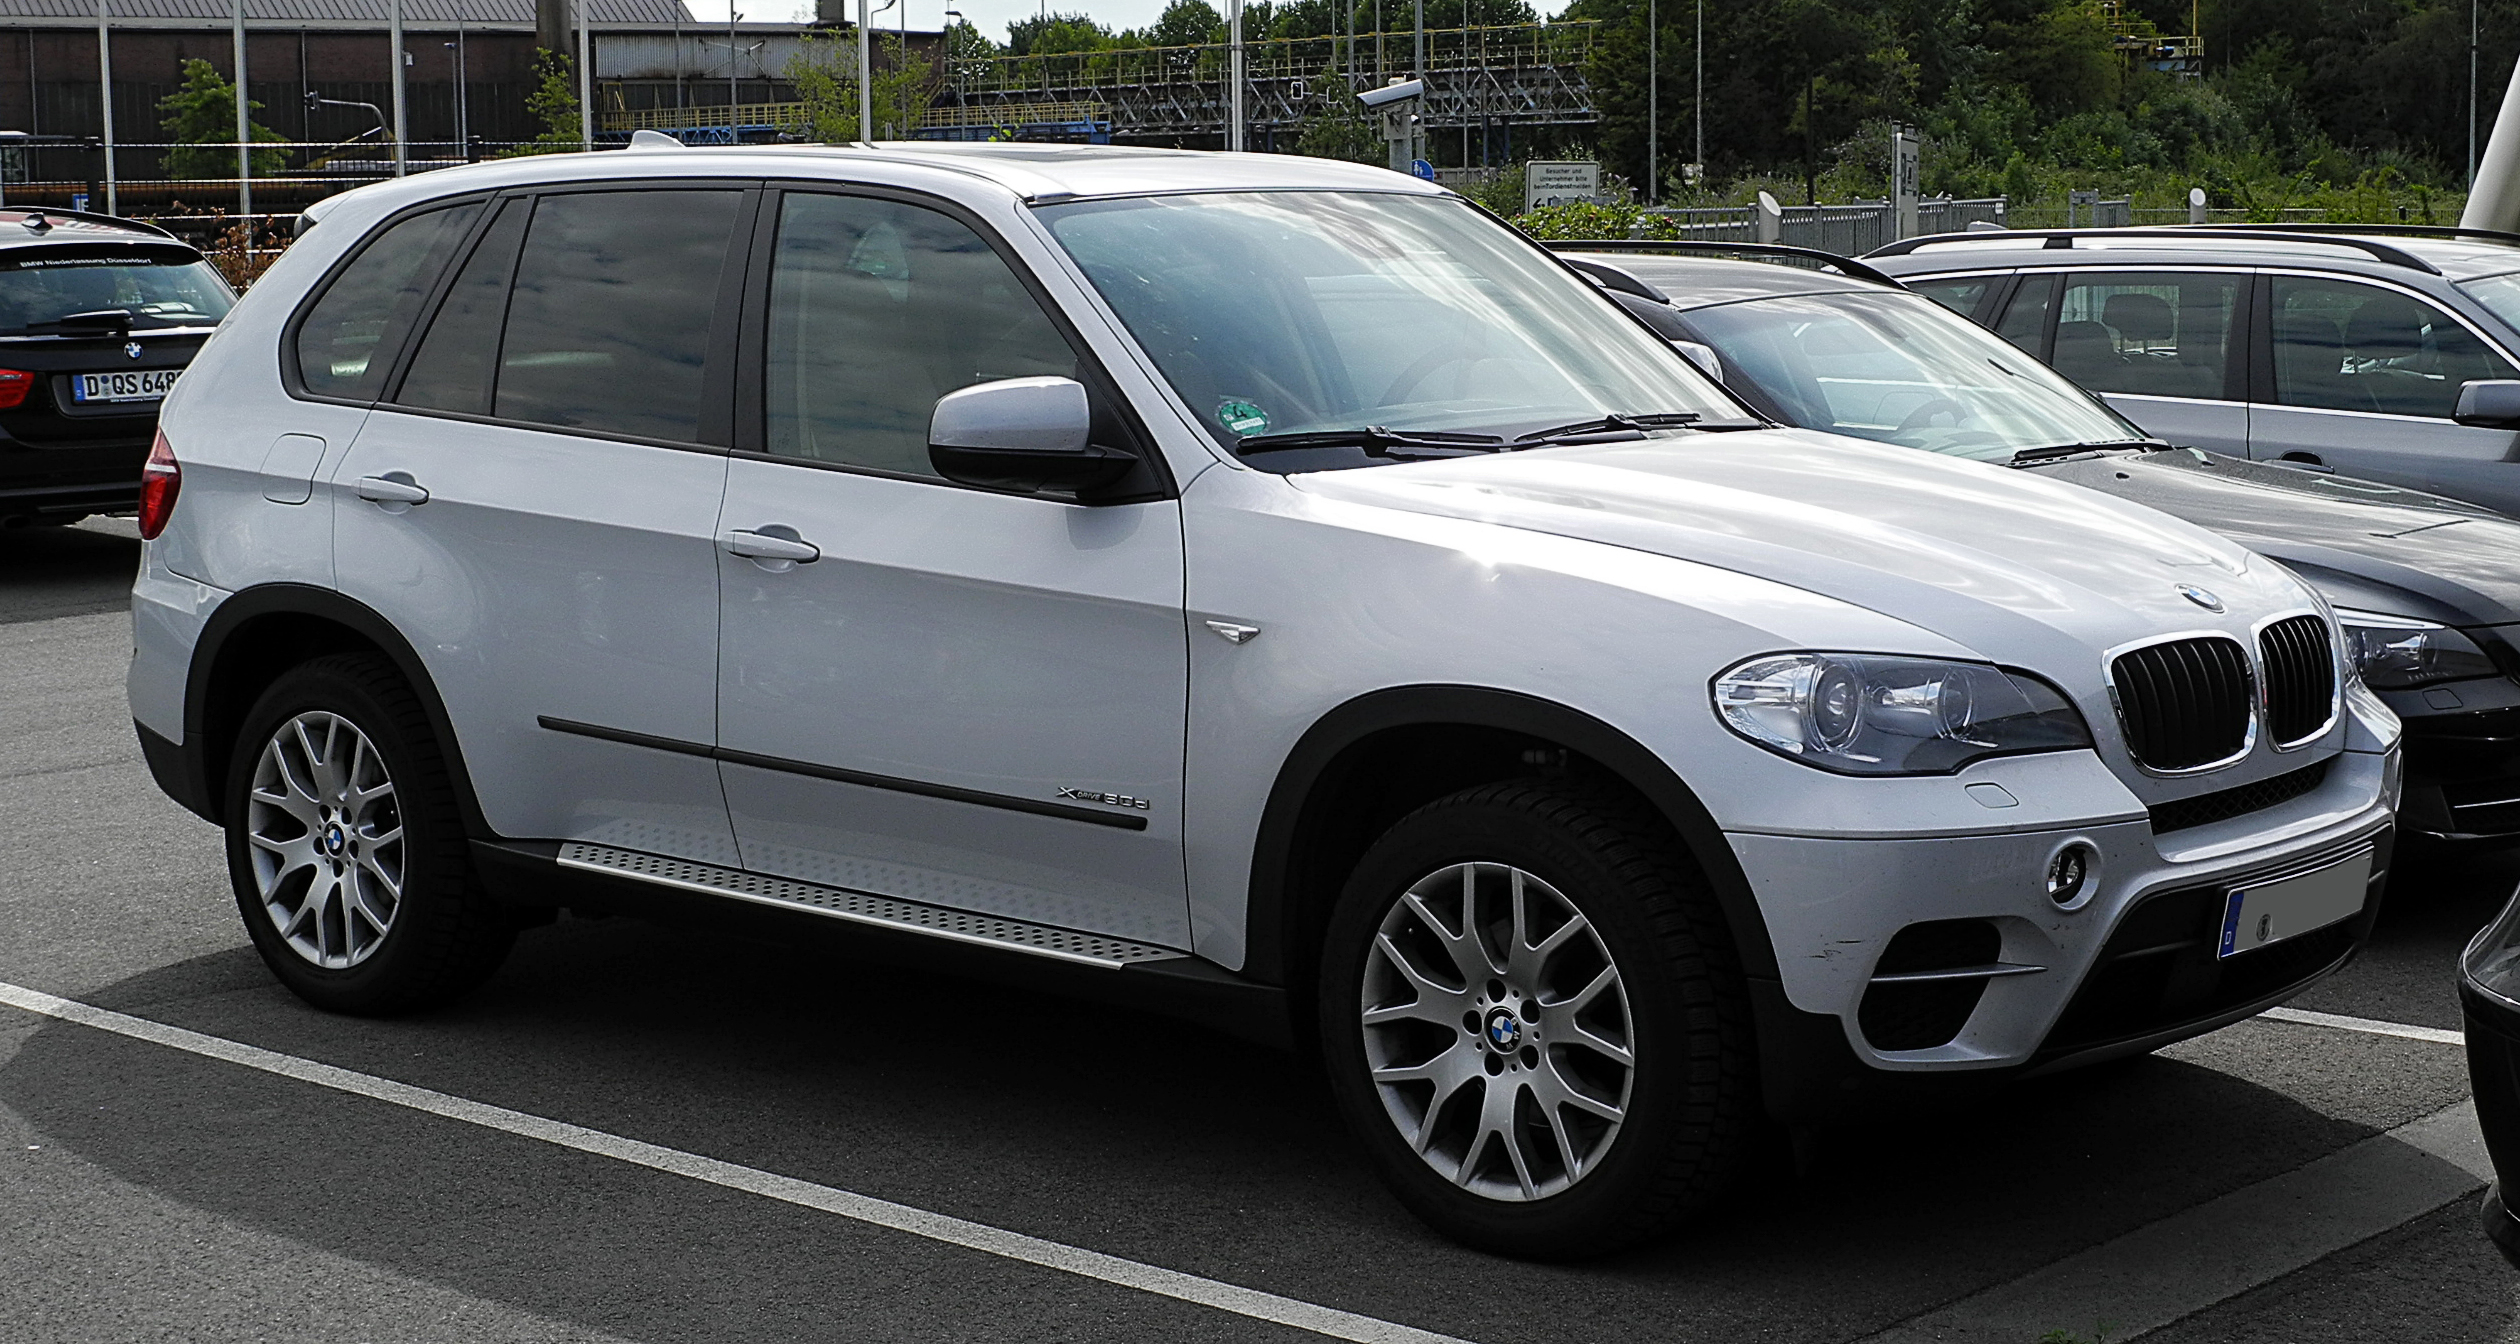 File:BMW X5 xDrive30d (E70, Facelift) – Frontansicht, 2 ...